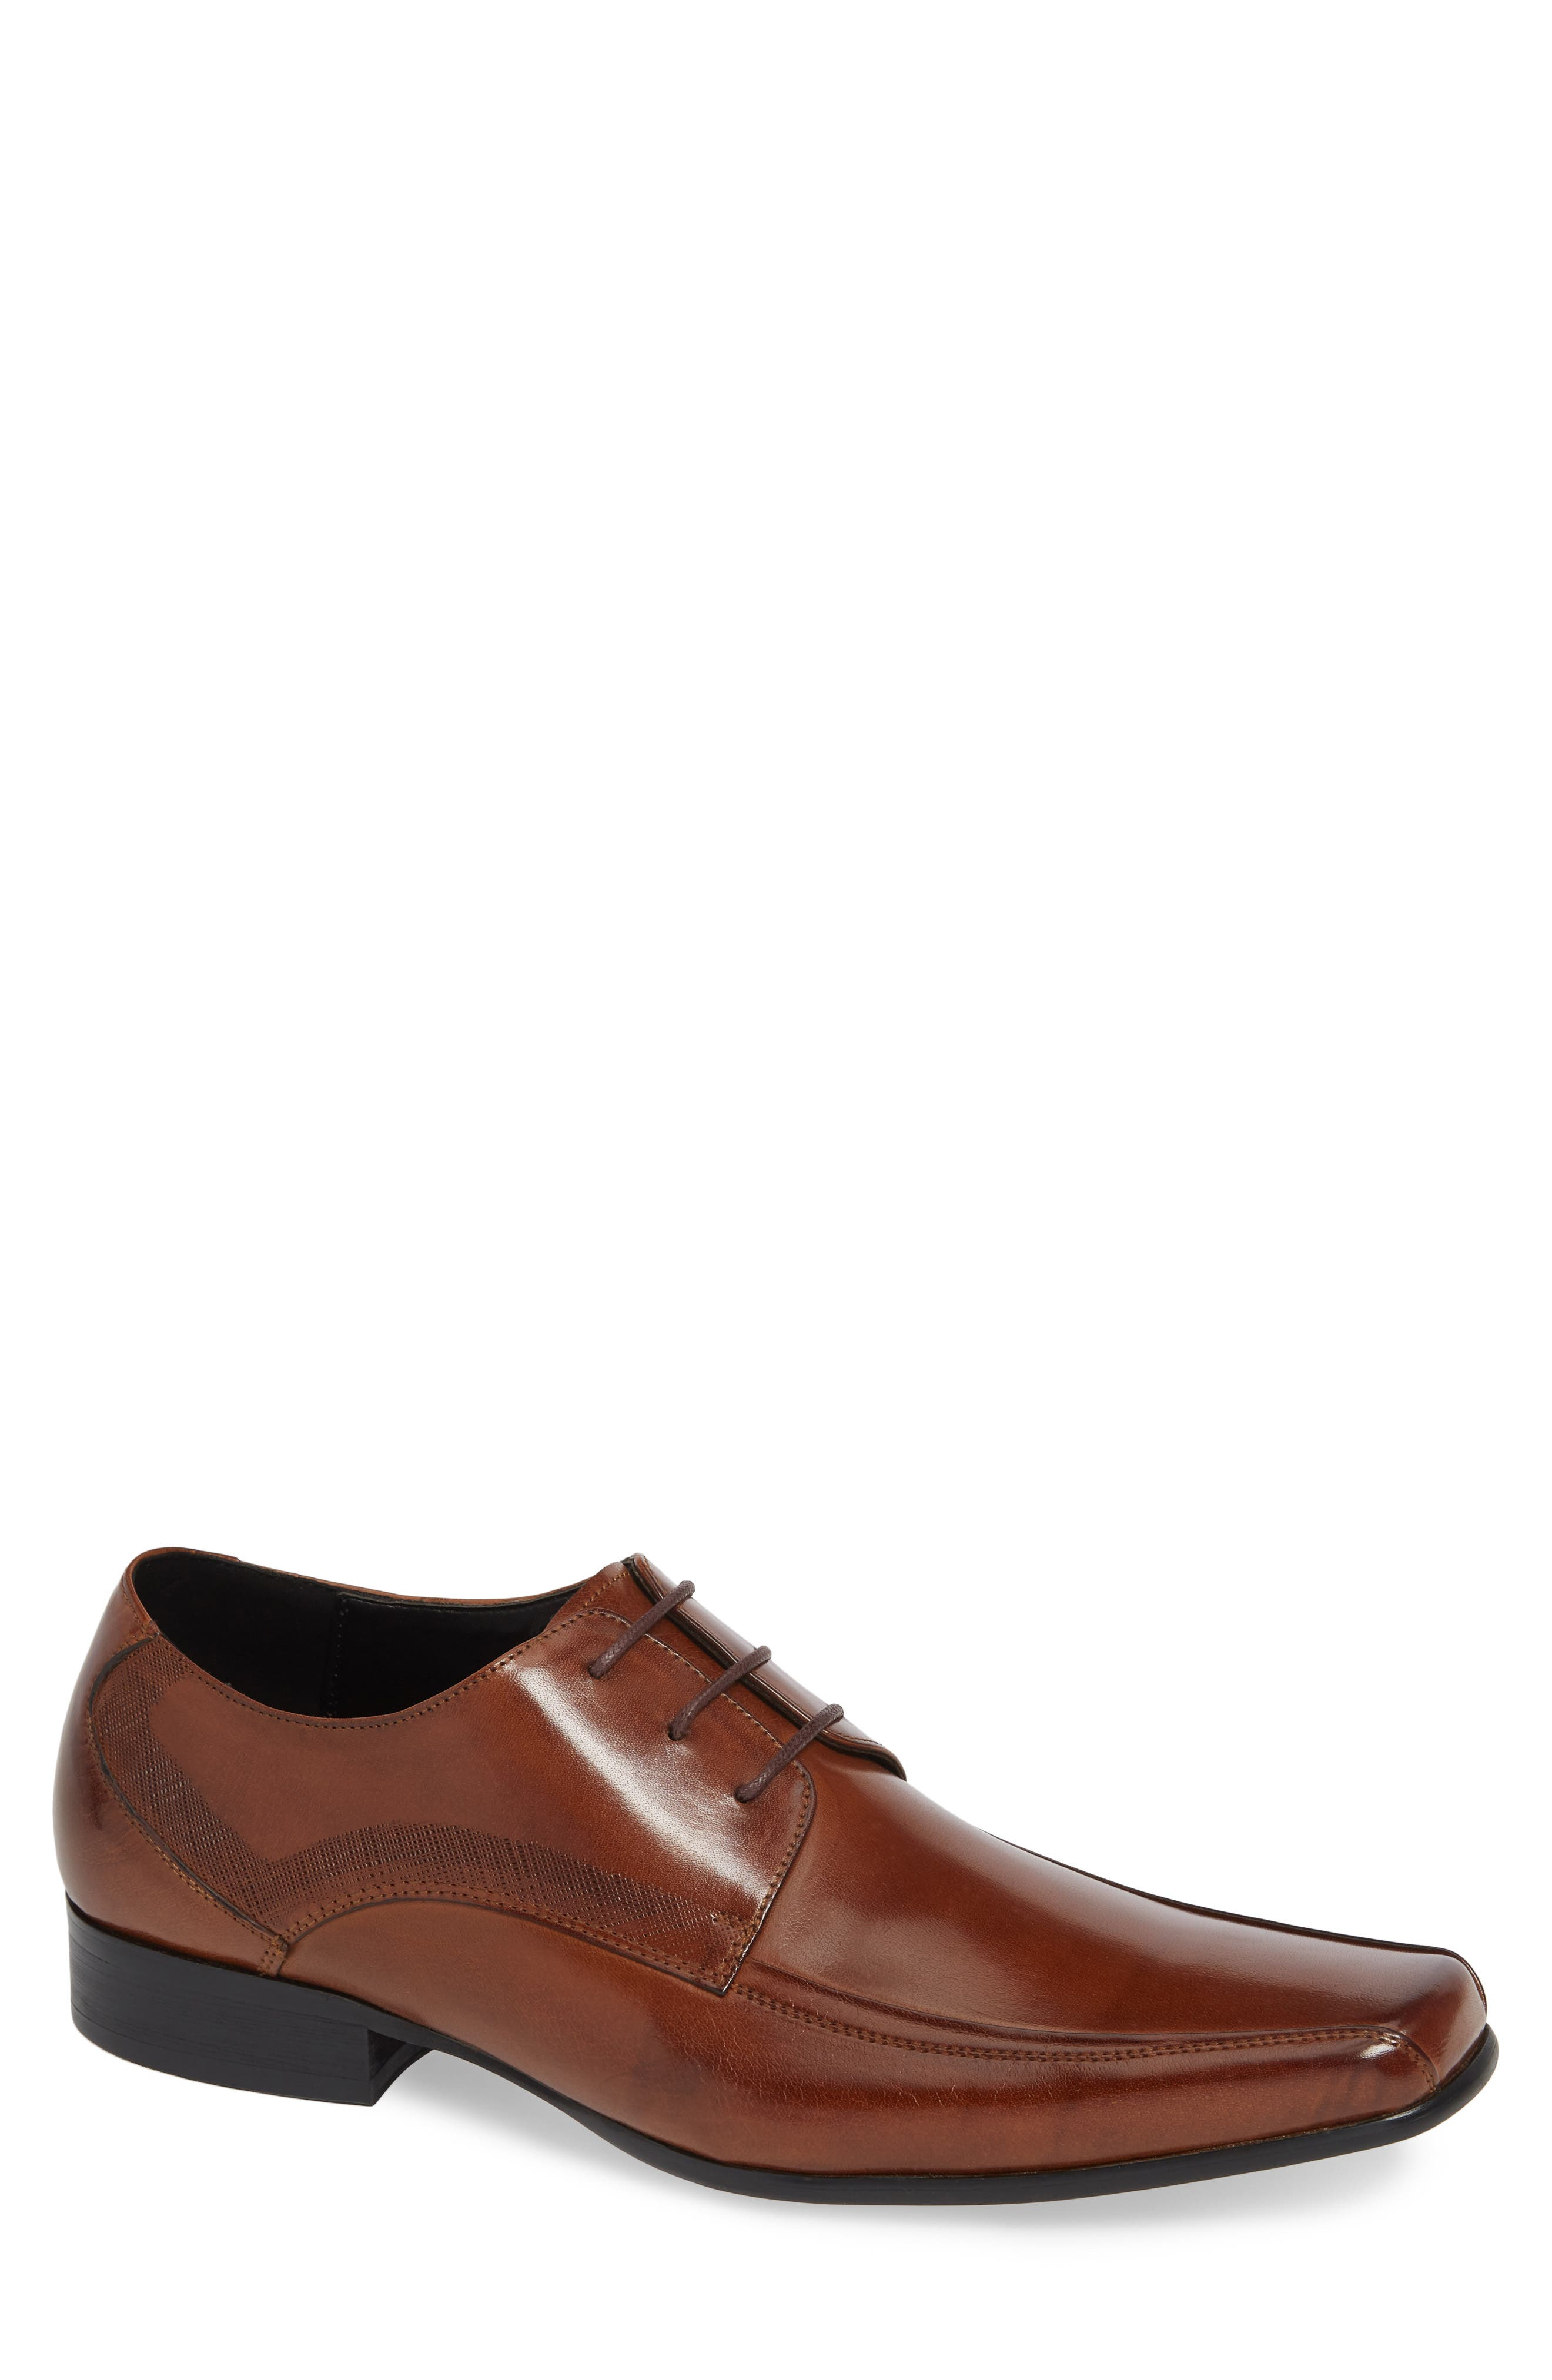 KENNETH COLE NEW YORK, Magic Place Bike Toe Derby, Main thumbnail 1, color, COGNAC LEATHER